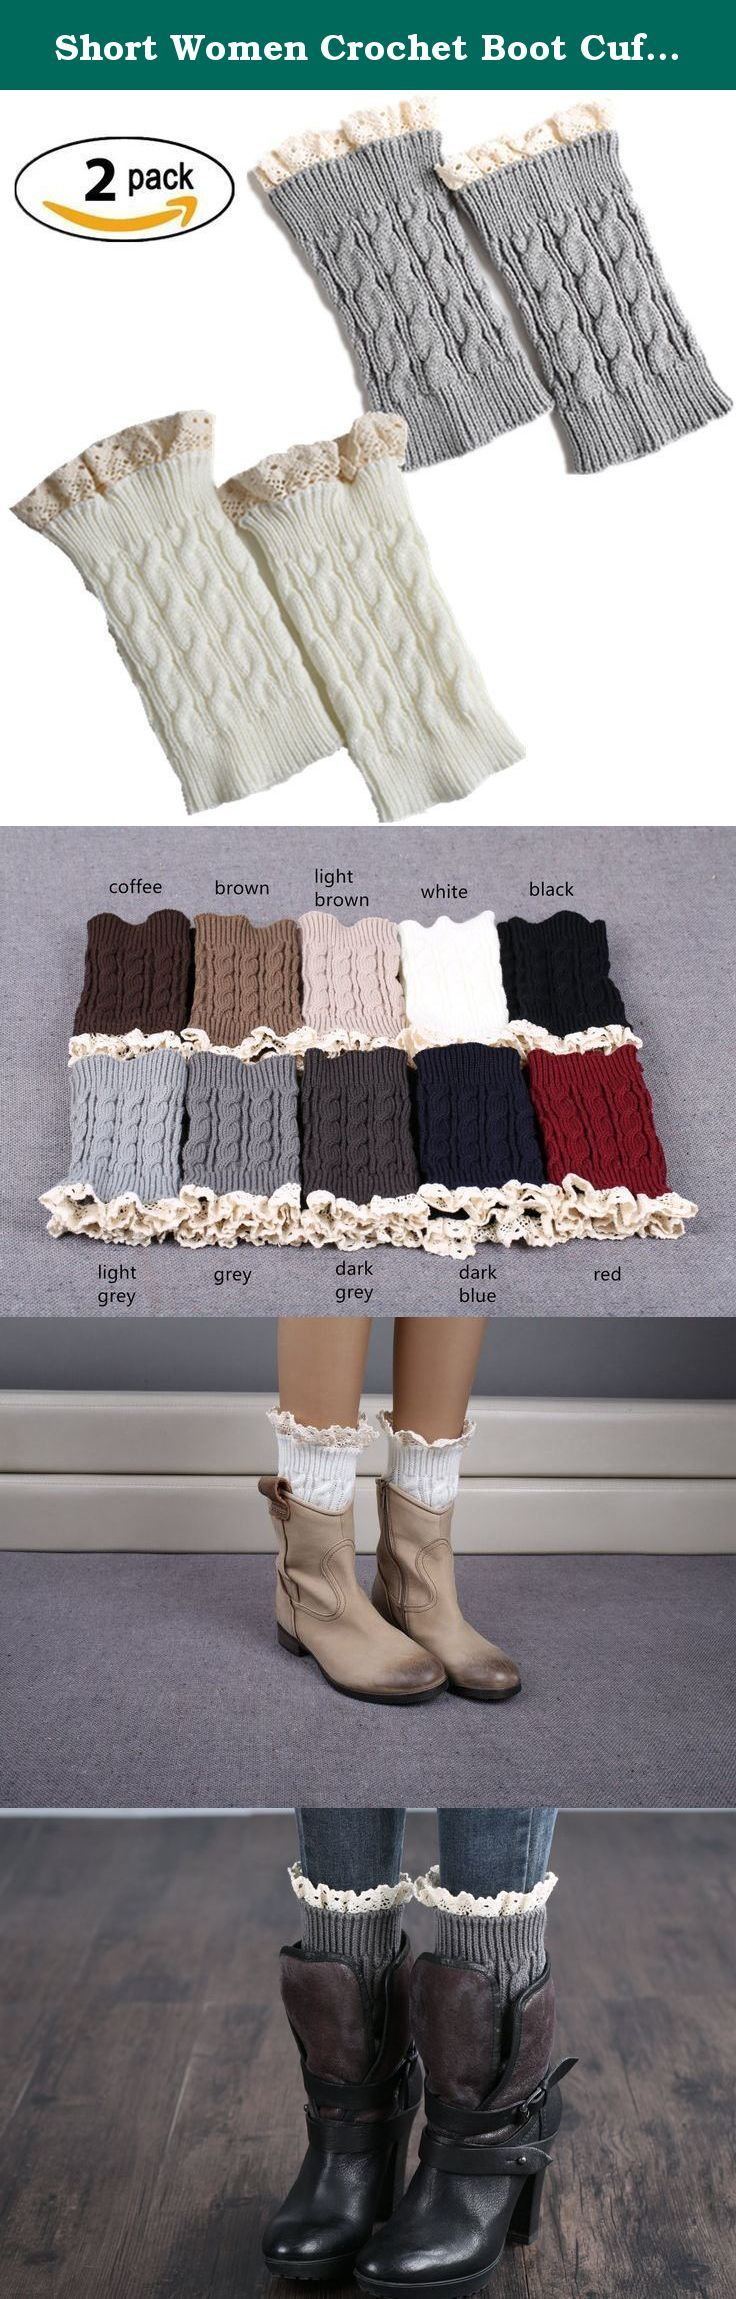 Short Women Crochet Boot Cuffs Winter Cable Knit Leg Warmers. In cold winter, it means shivering in low temperatures and freezing cold! The Leg warmers and boot socks end up feeling so bulky and leaving your feet and ankles overheated when you go indoors, and crew socks don't reach high enough to keep your legs warm. Boot Cuffs are cute cropped leg warmers that slip down into the tops of your boots. Once in place, the boot cuffs topper pair keeps your legs warmer and adds a stylish…